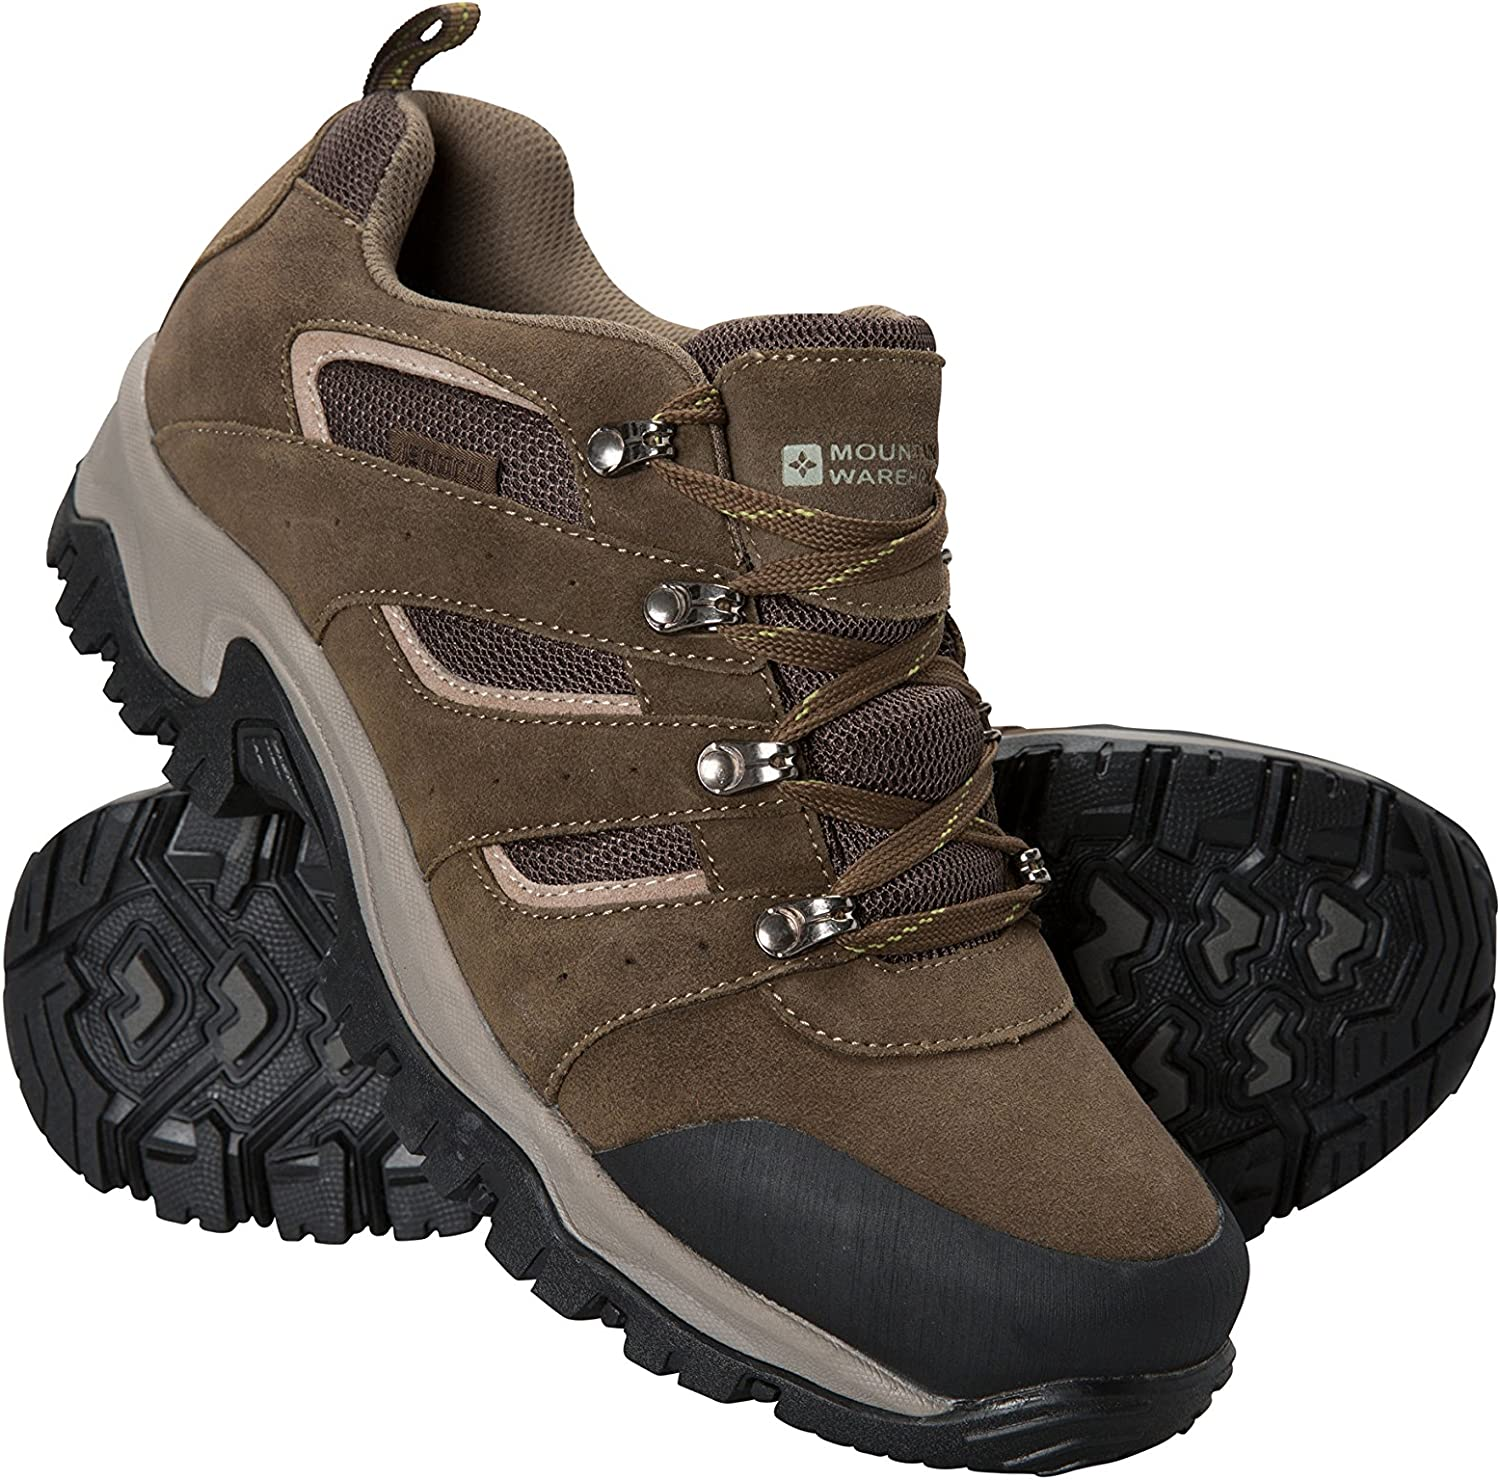 Mountain Warehouse Voyage Mens Waterproof shoes - Light Hiking Boots